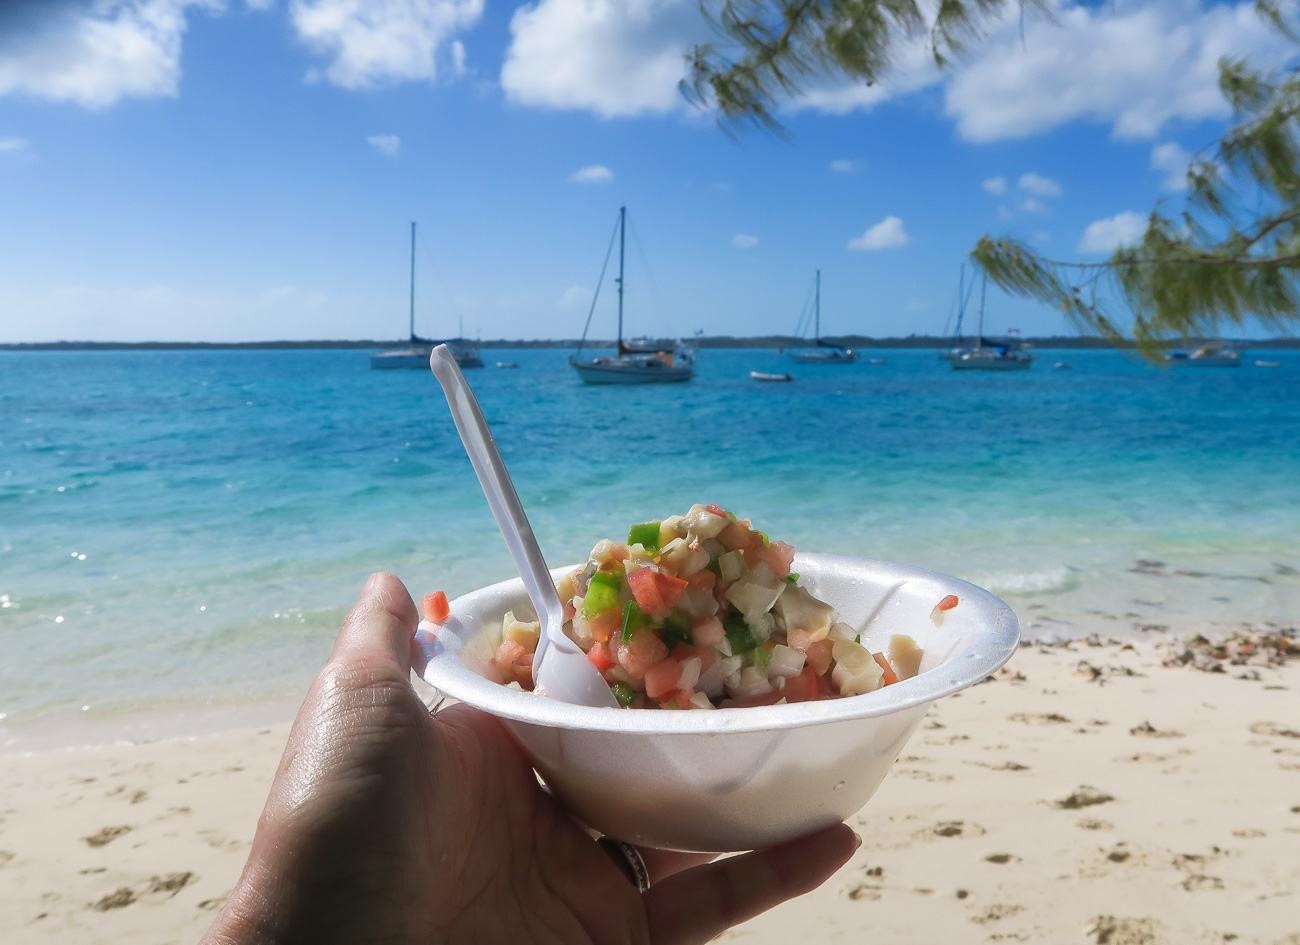 When visiting Great Exuma, conch salad at Chat N Chill is a must. Plus, you feed scraps to stingrays!